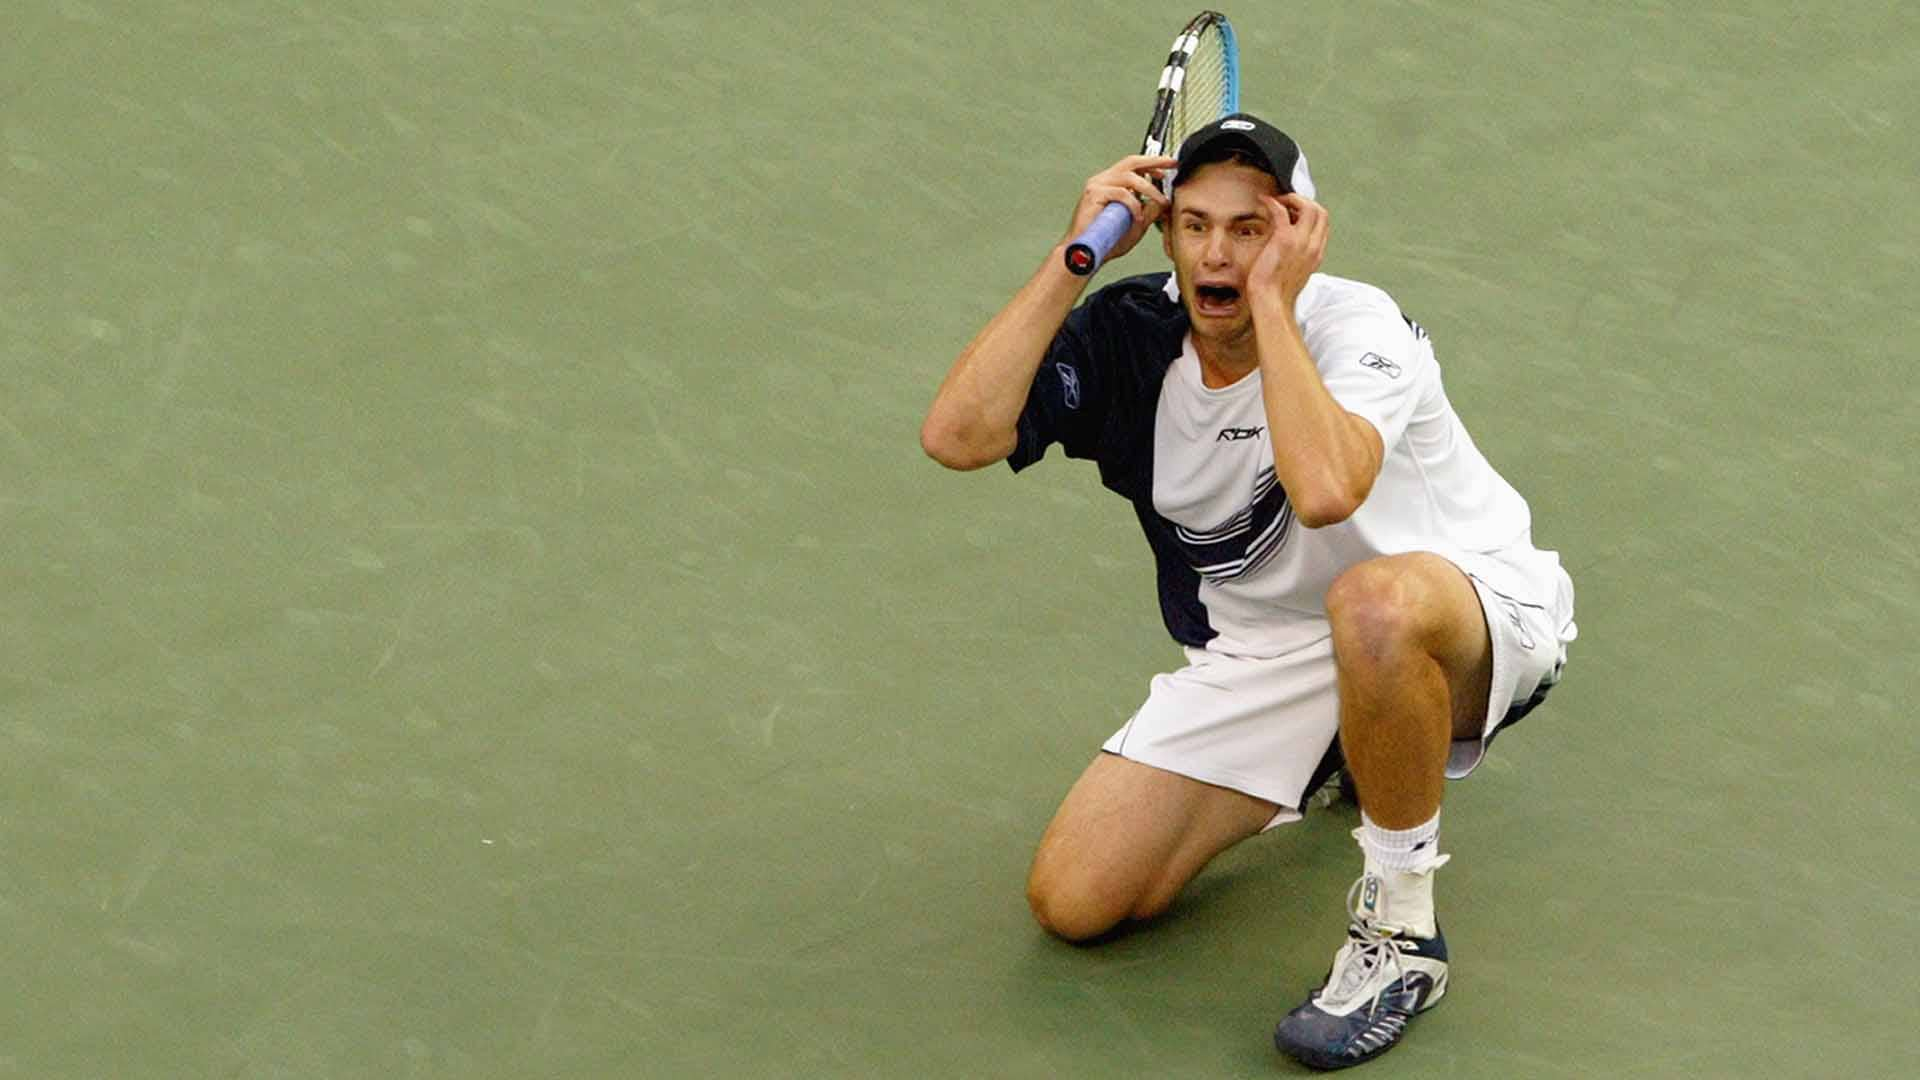 Andy Roddick beat Juan Carlos Ferrero in straight sets to win the 2003 US Open.